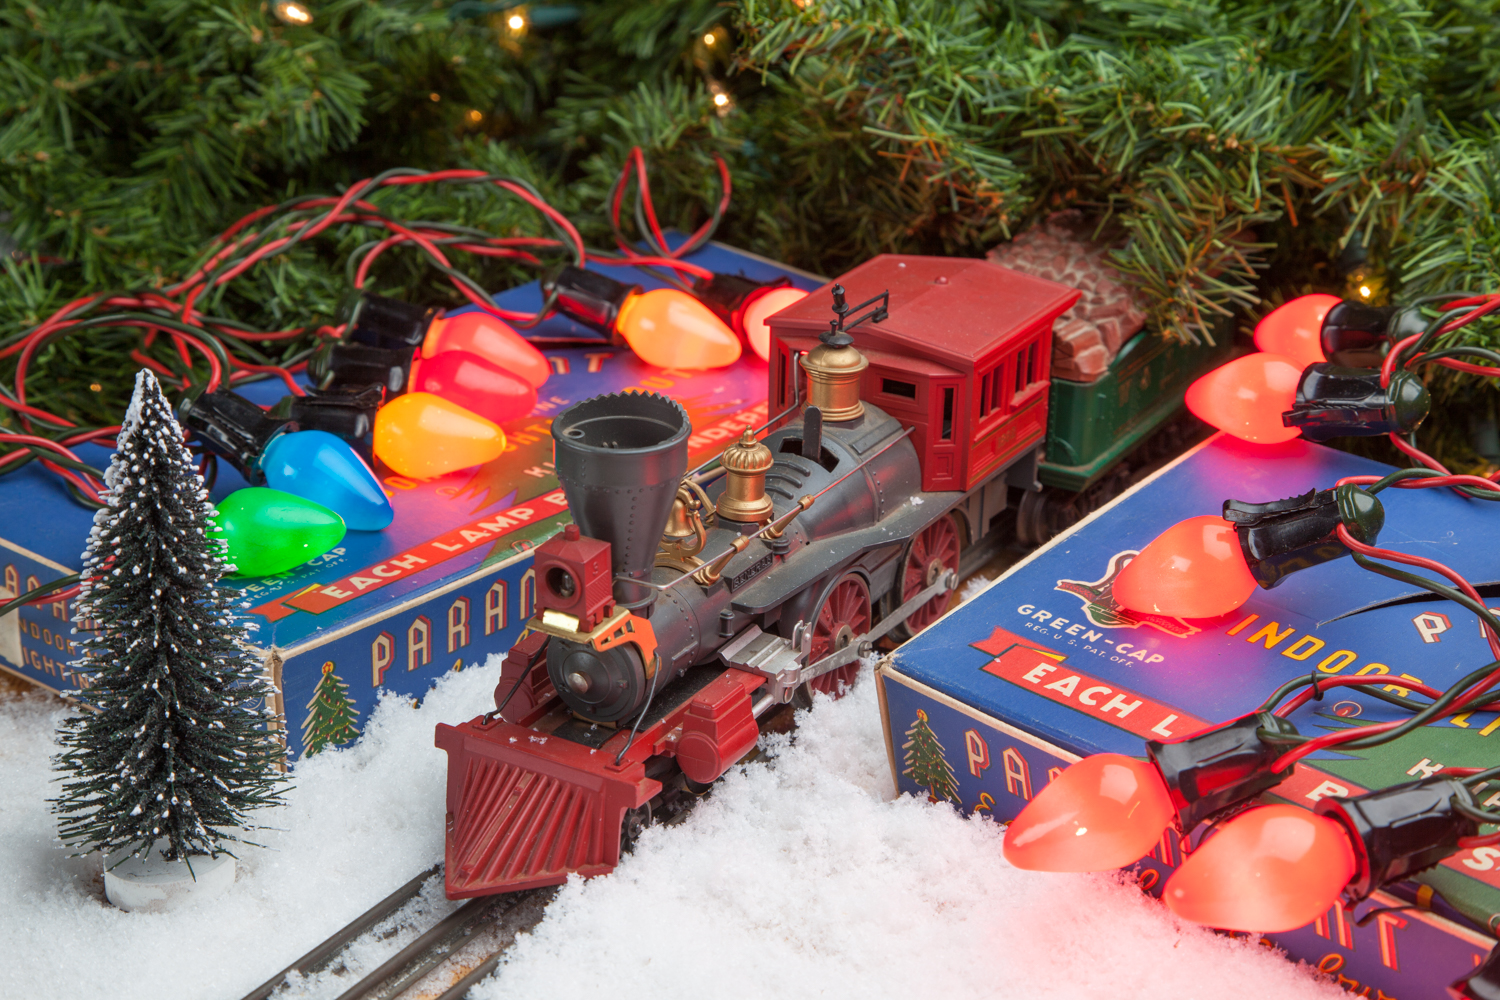 Photograph of toy train and light product packages